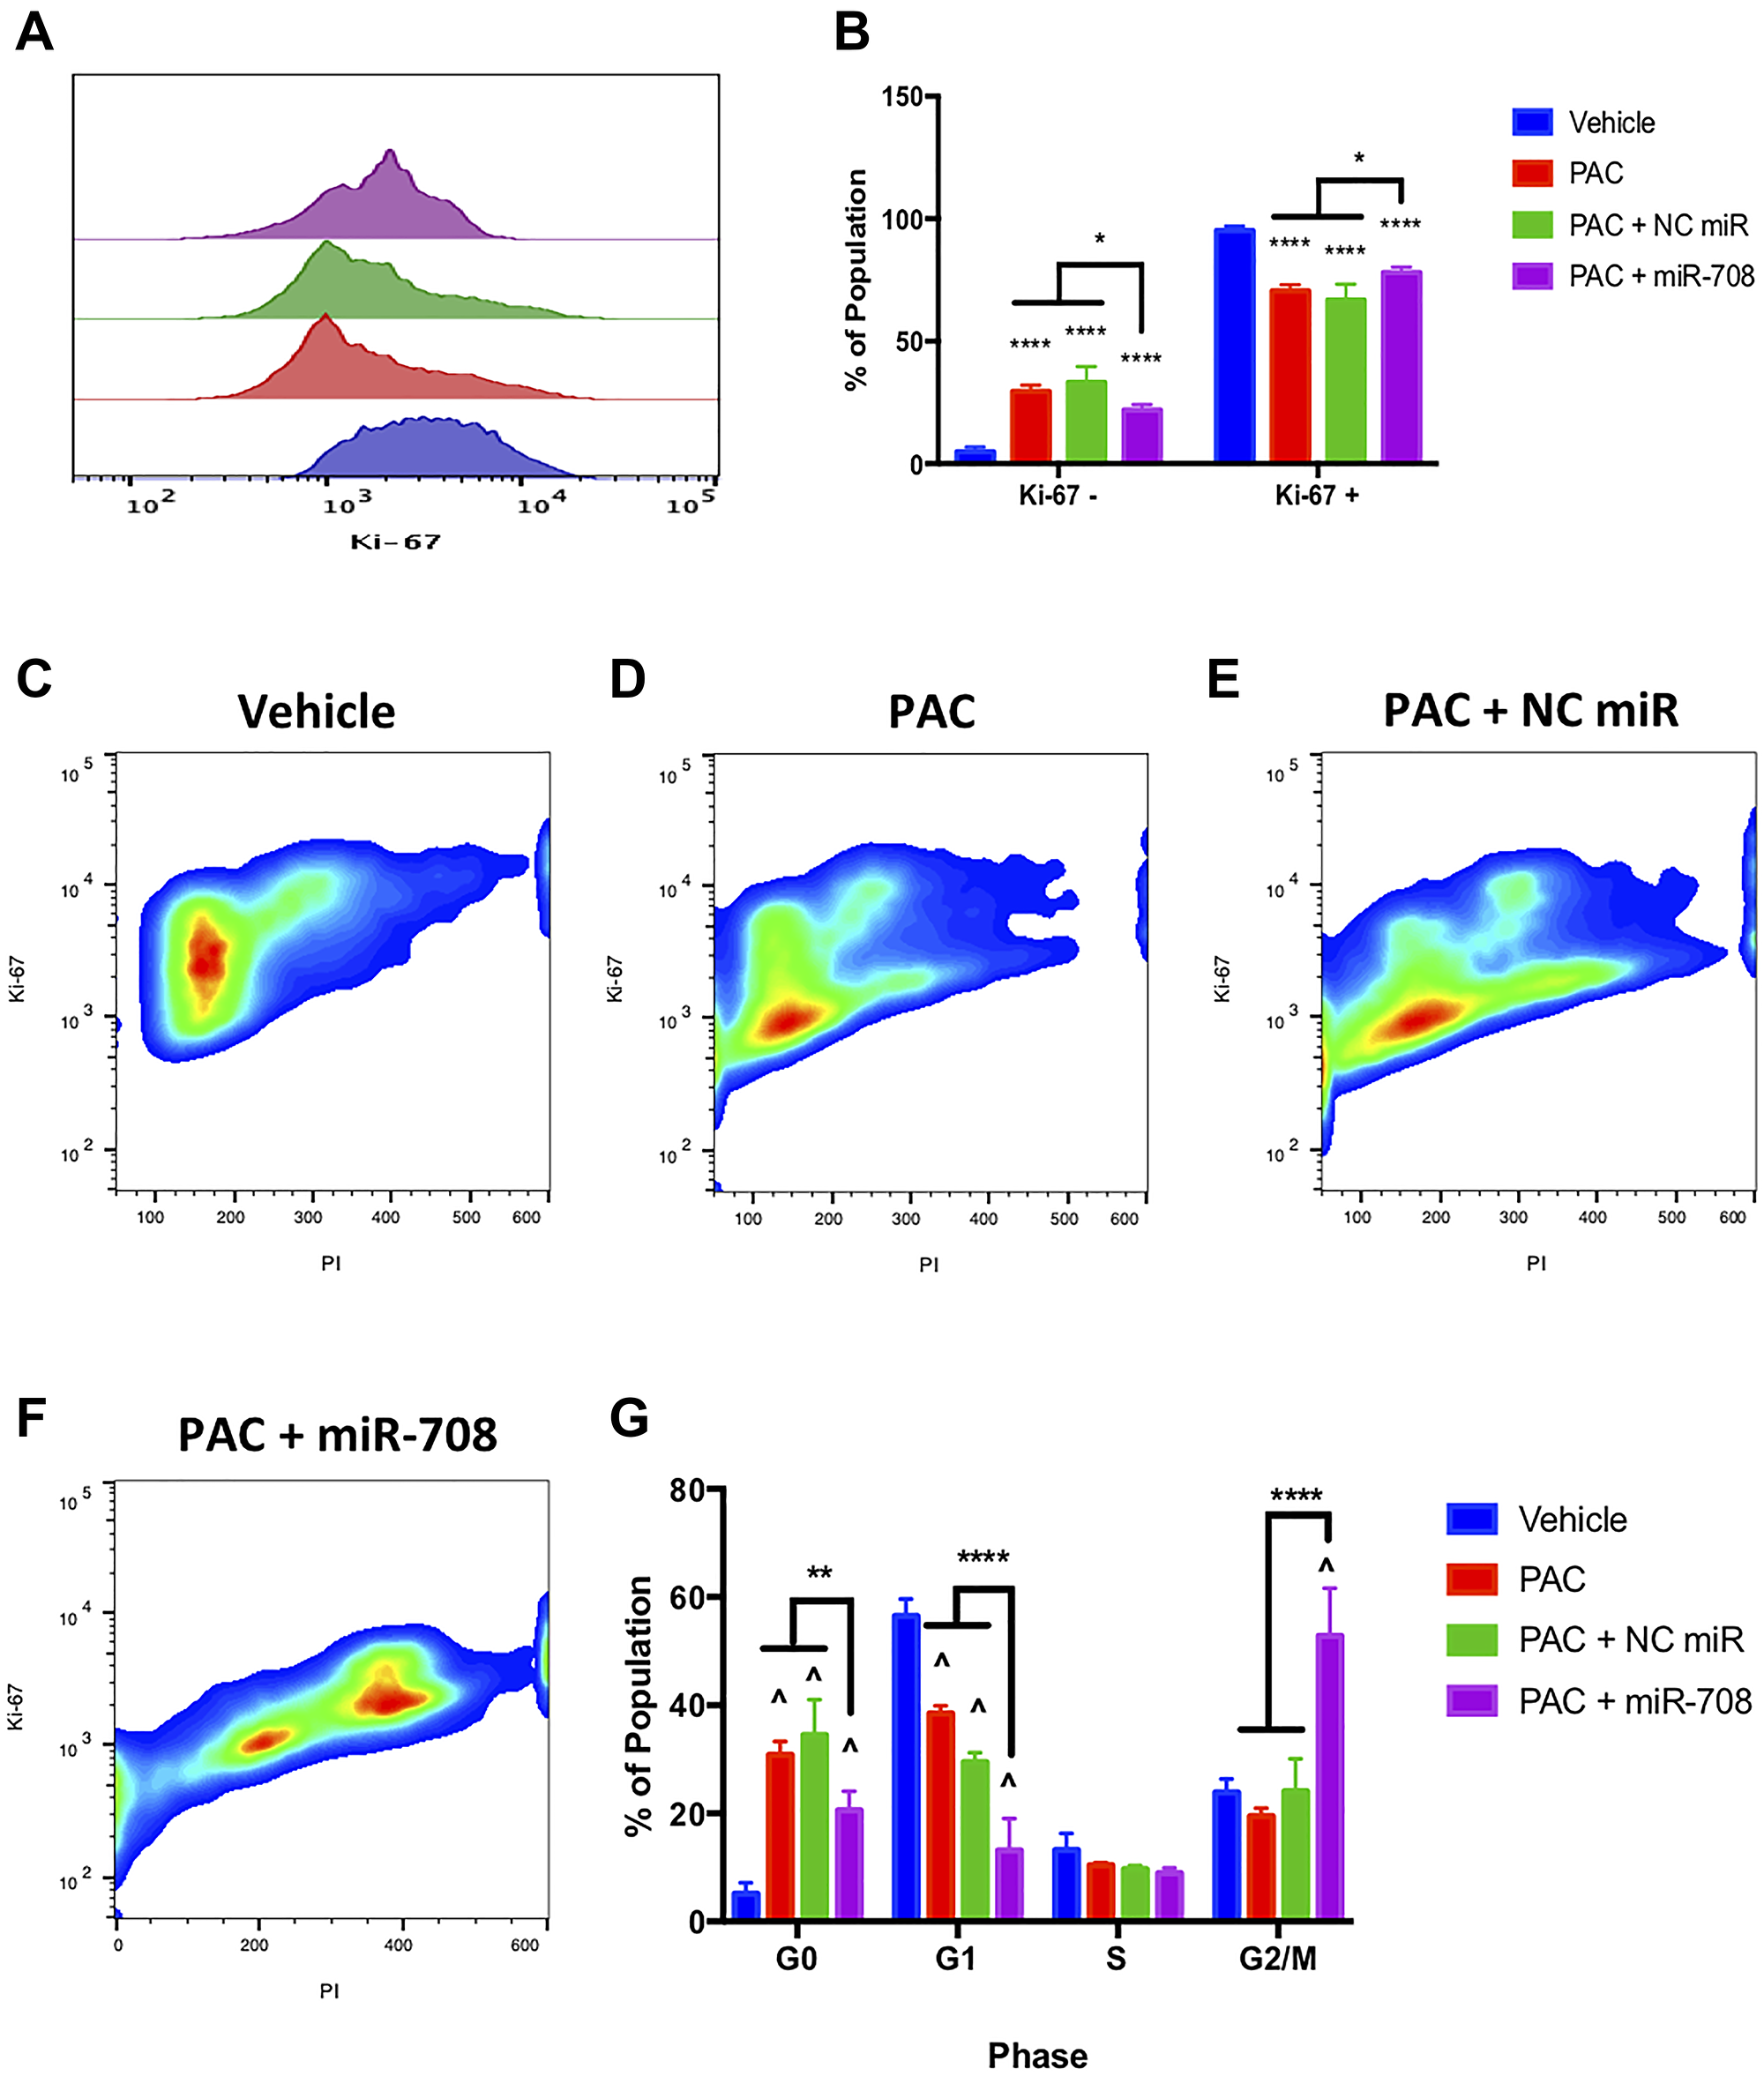 miR-708-5p enhances PAC-mediated anti-proliferative activities in lung cancer cells.